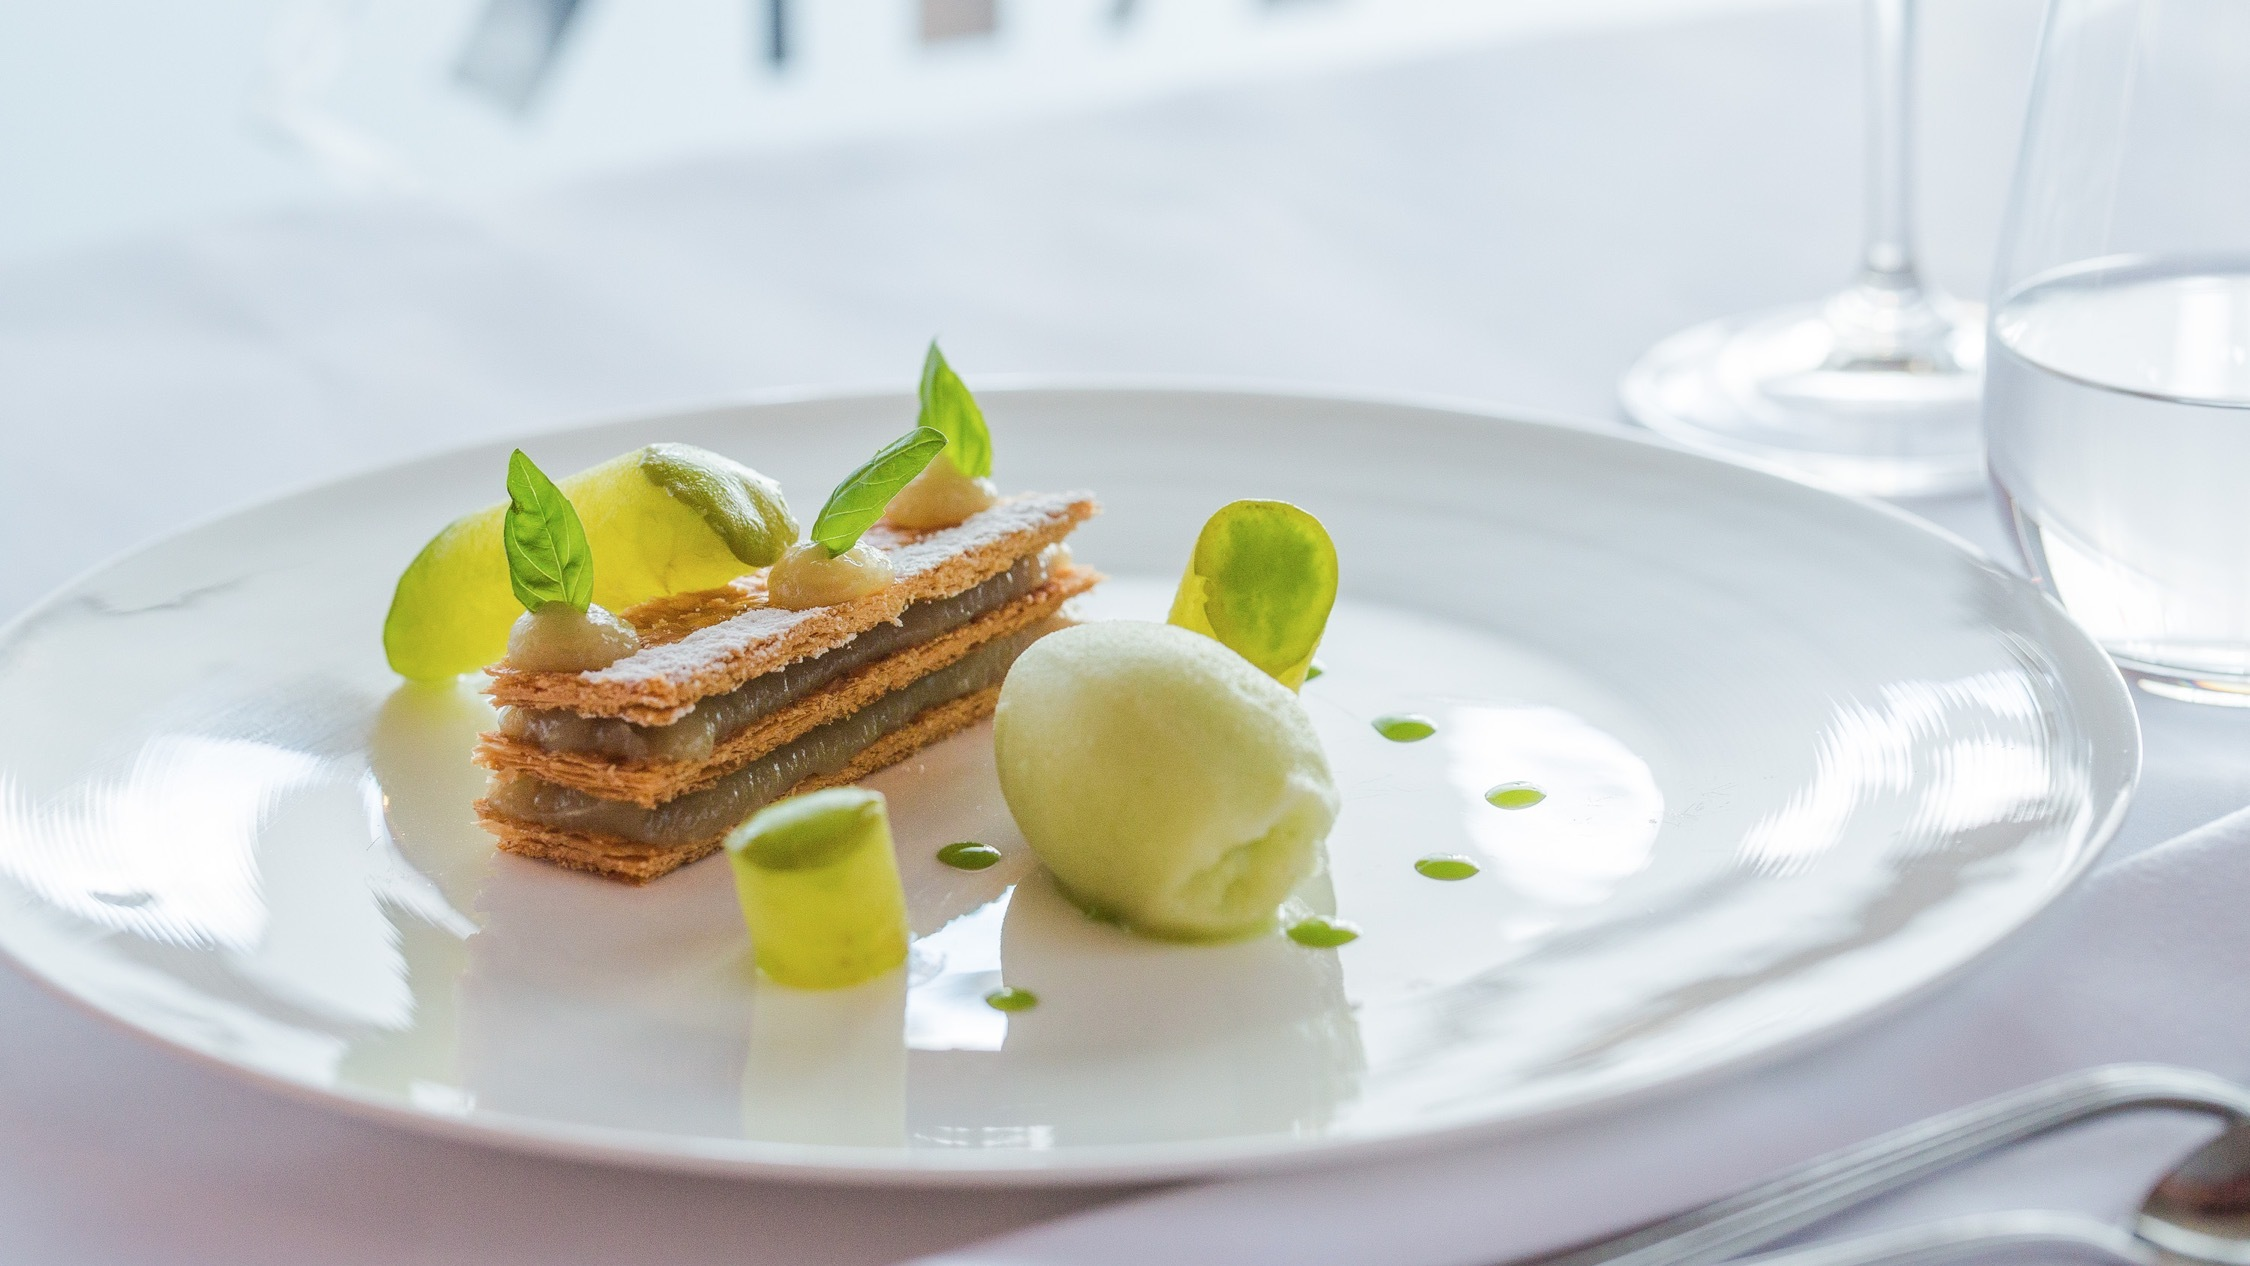 Fennel mille-feuille, basil and Granny Smith apple at Margo Restaurant, $16